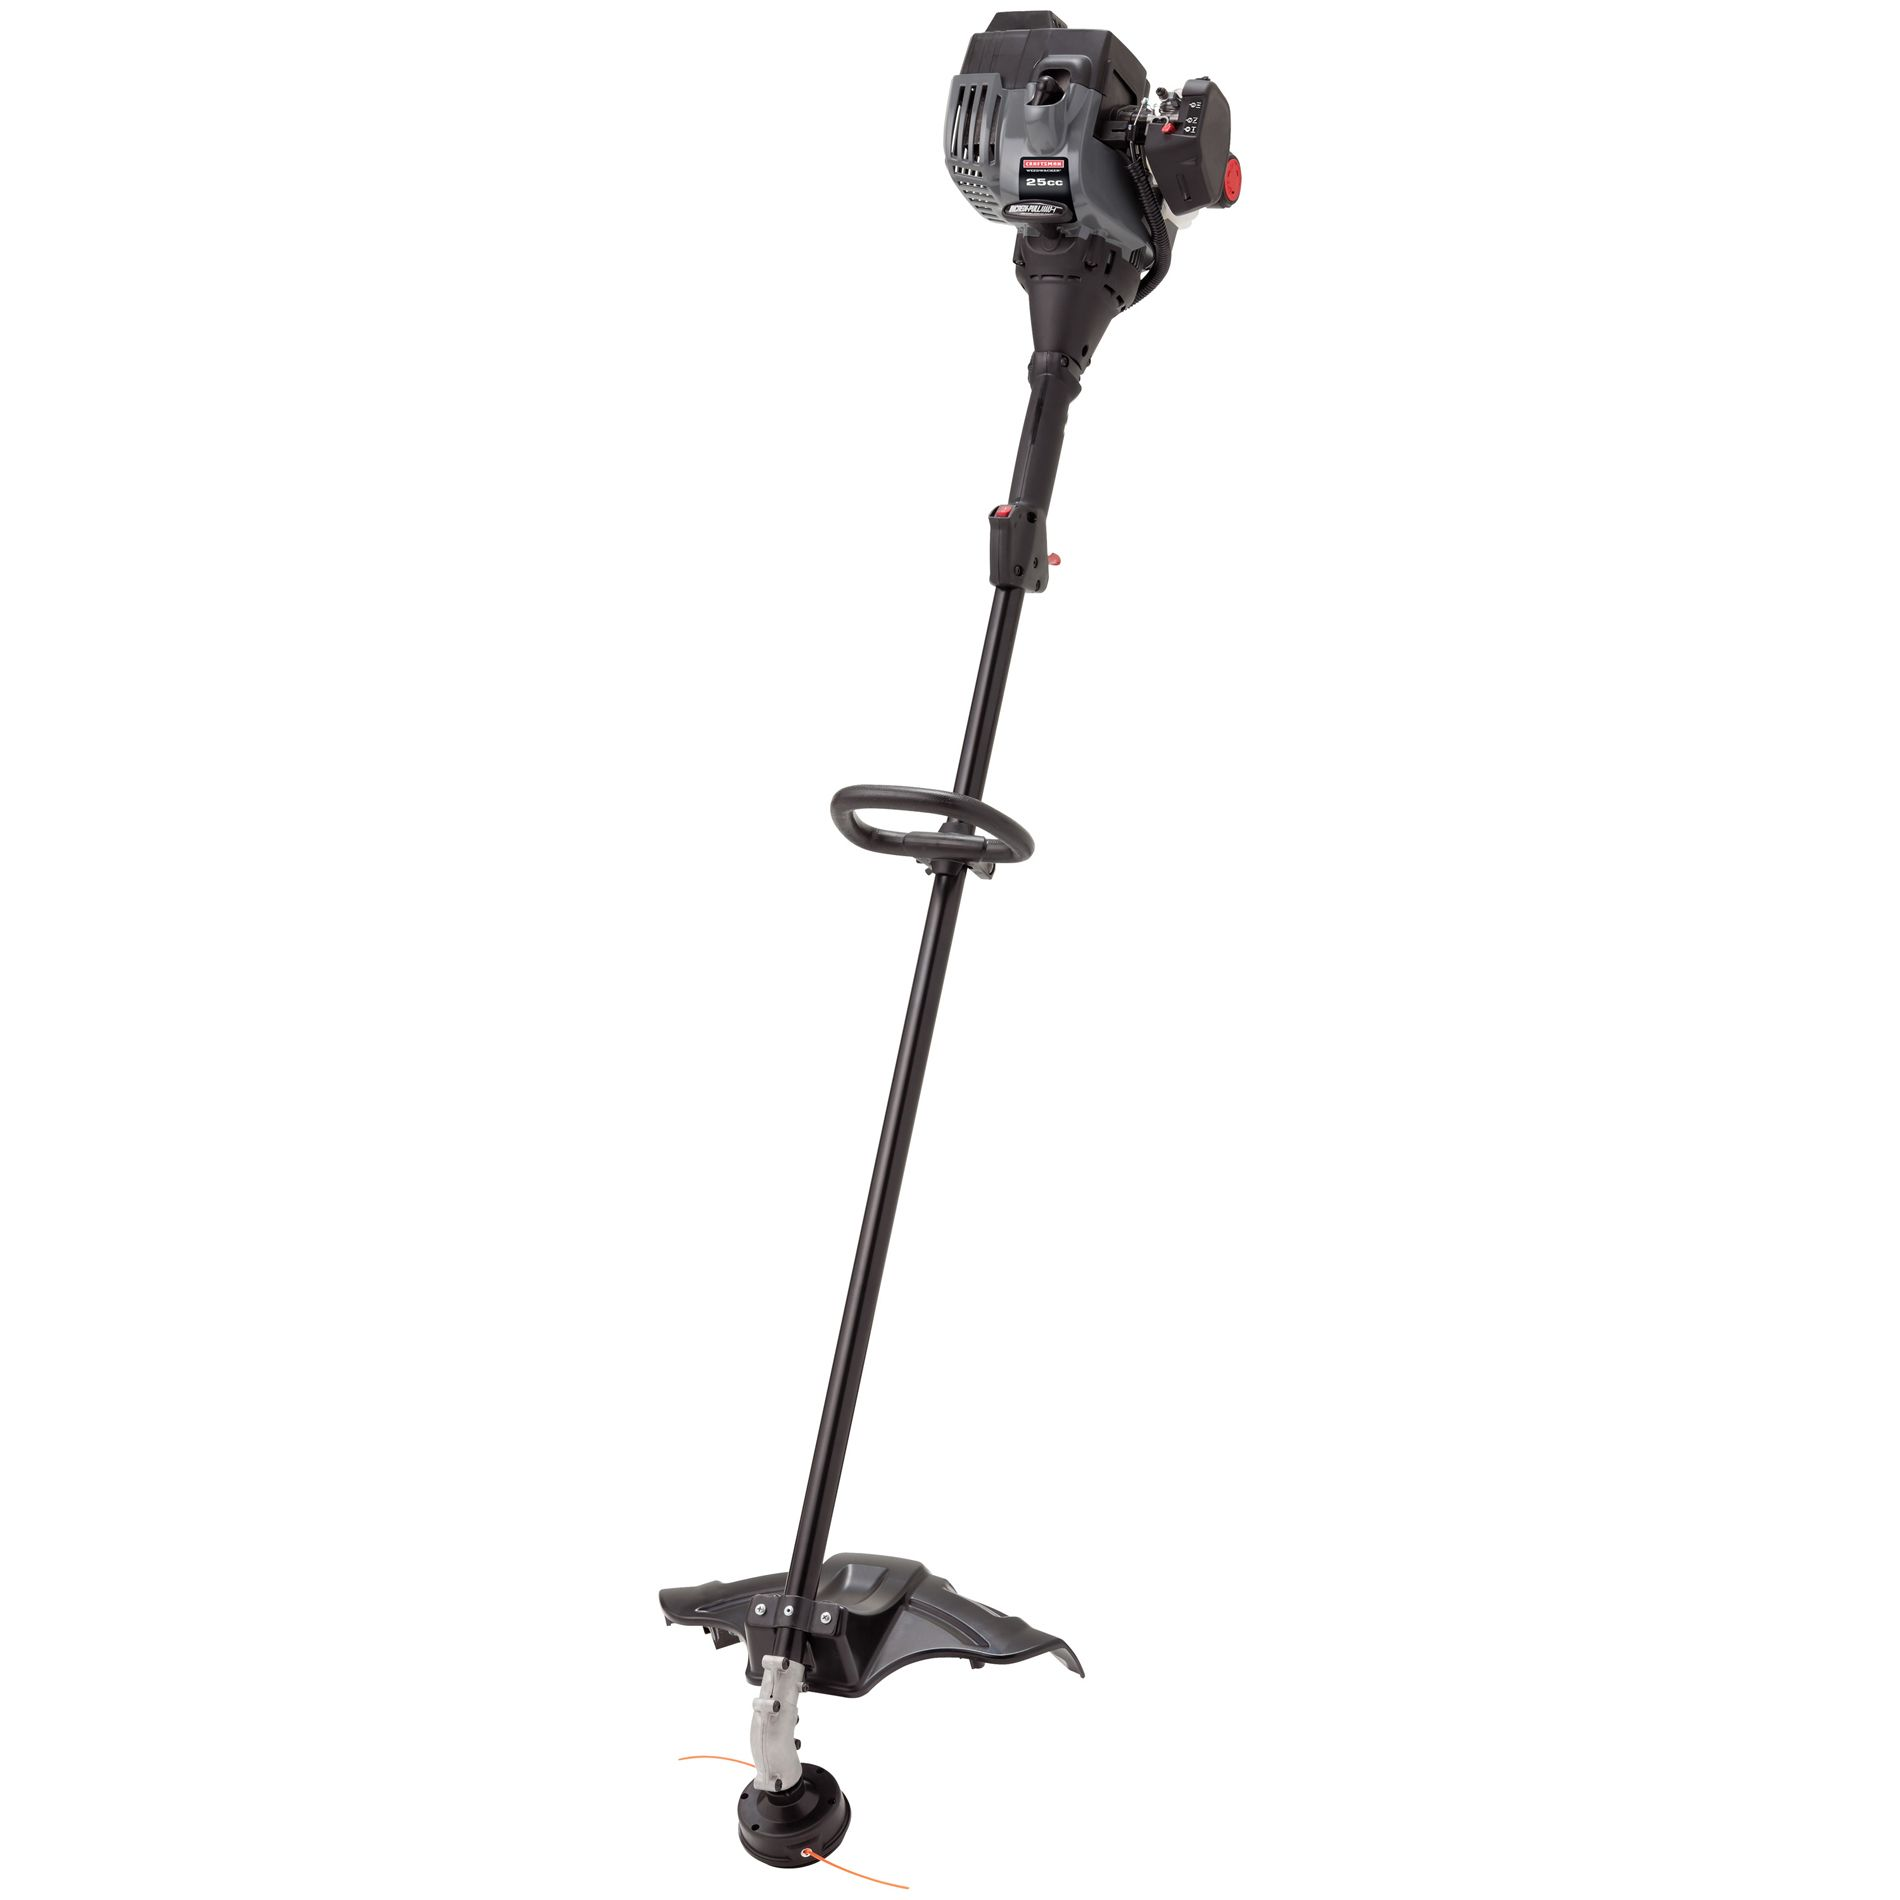 Craftsman 25cc* 2-Cycle Straight Shaft WeedWacker™ Gas Trimmer